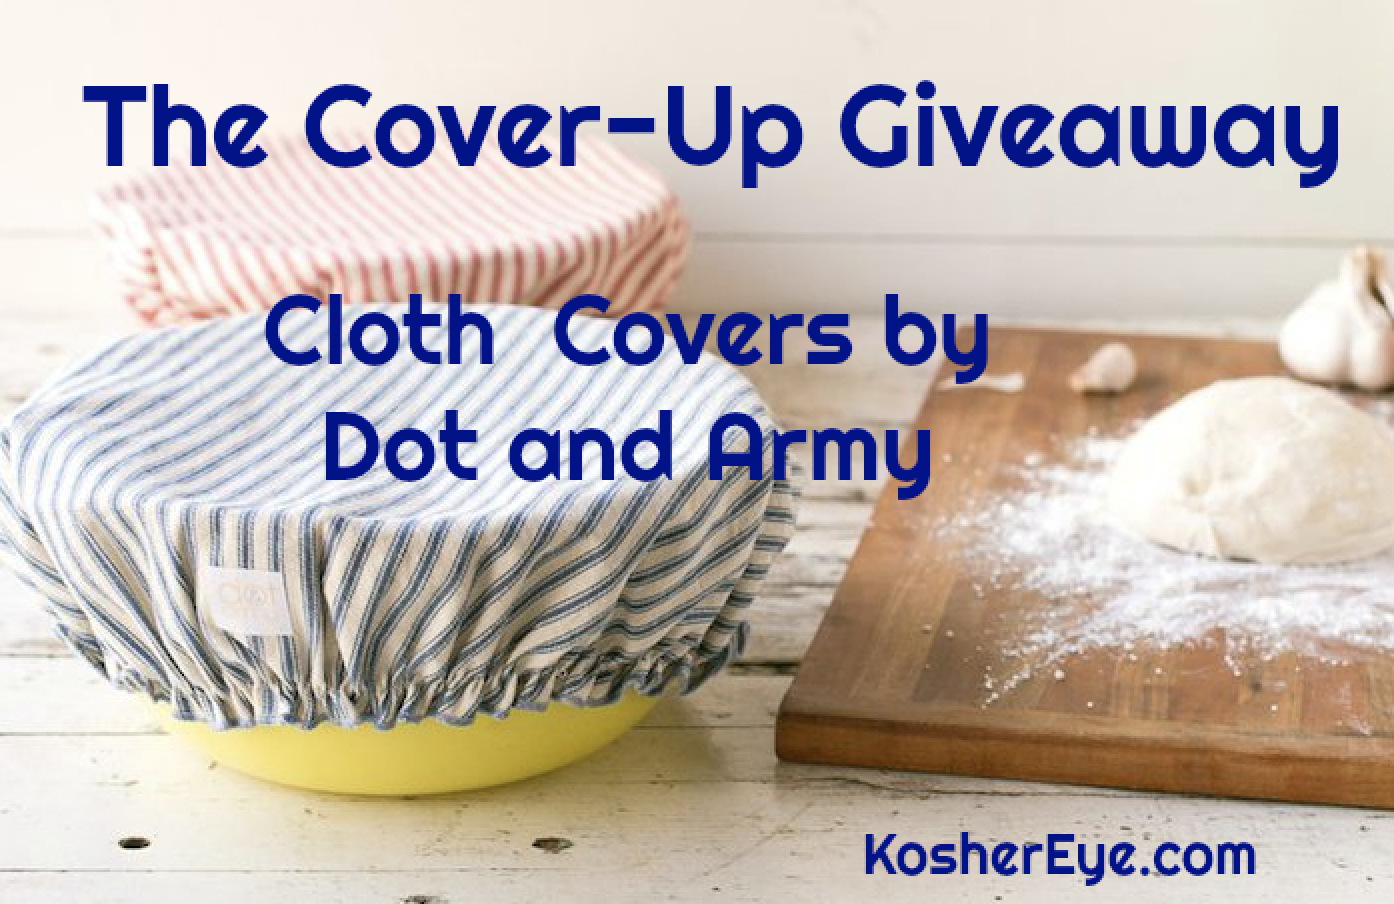 Dot and Army giveaway texted